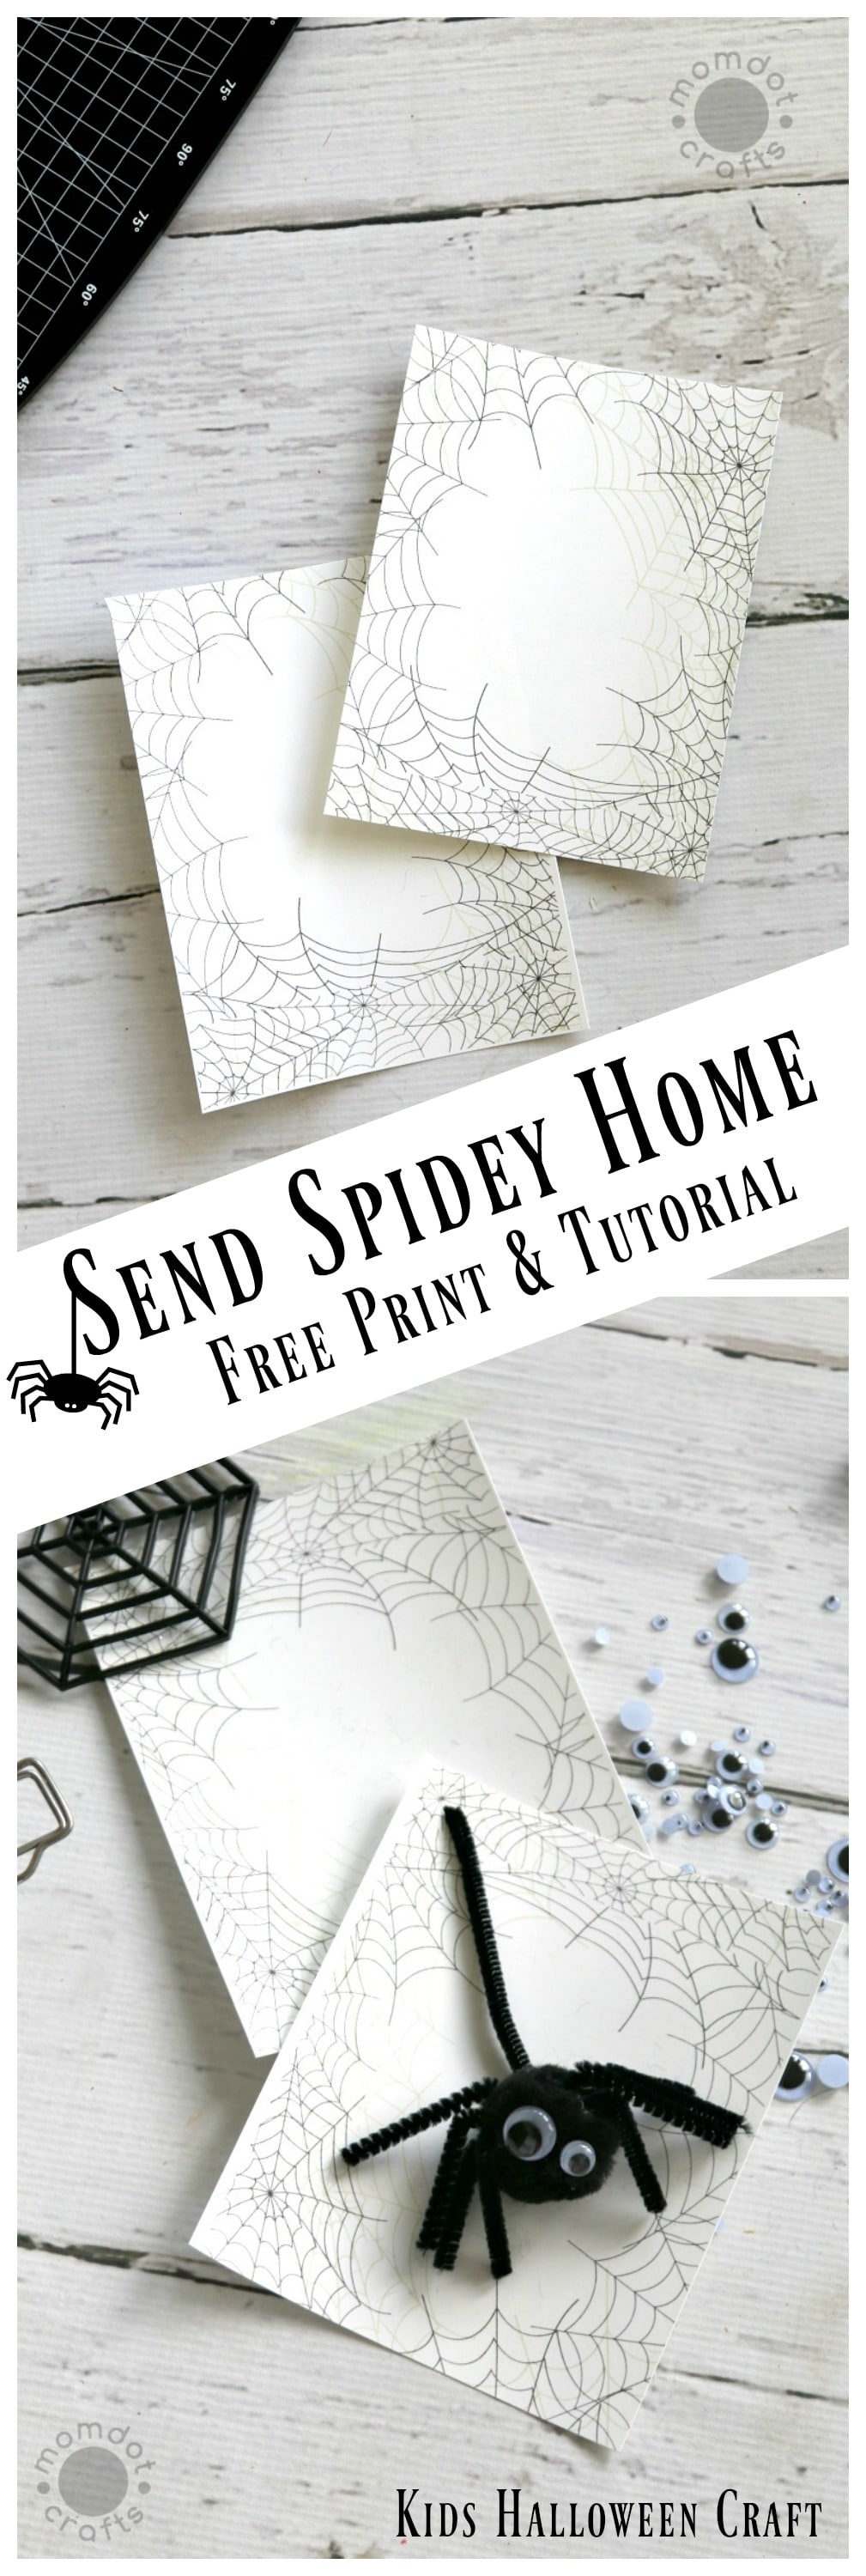 kids-halloween-crafts-spider-template-print-9